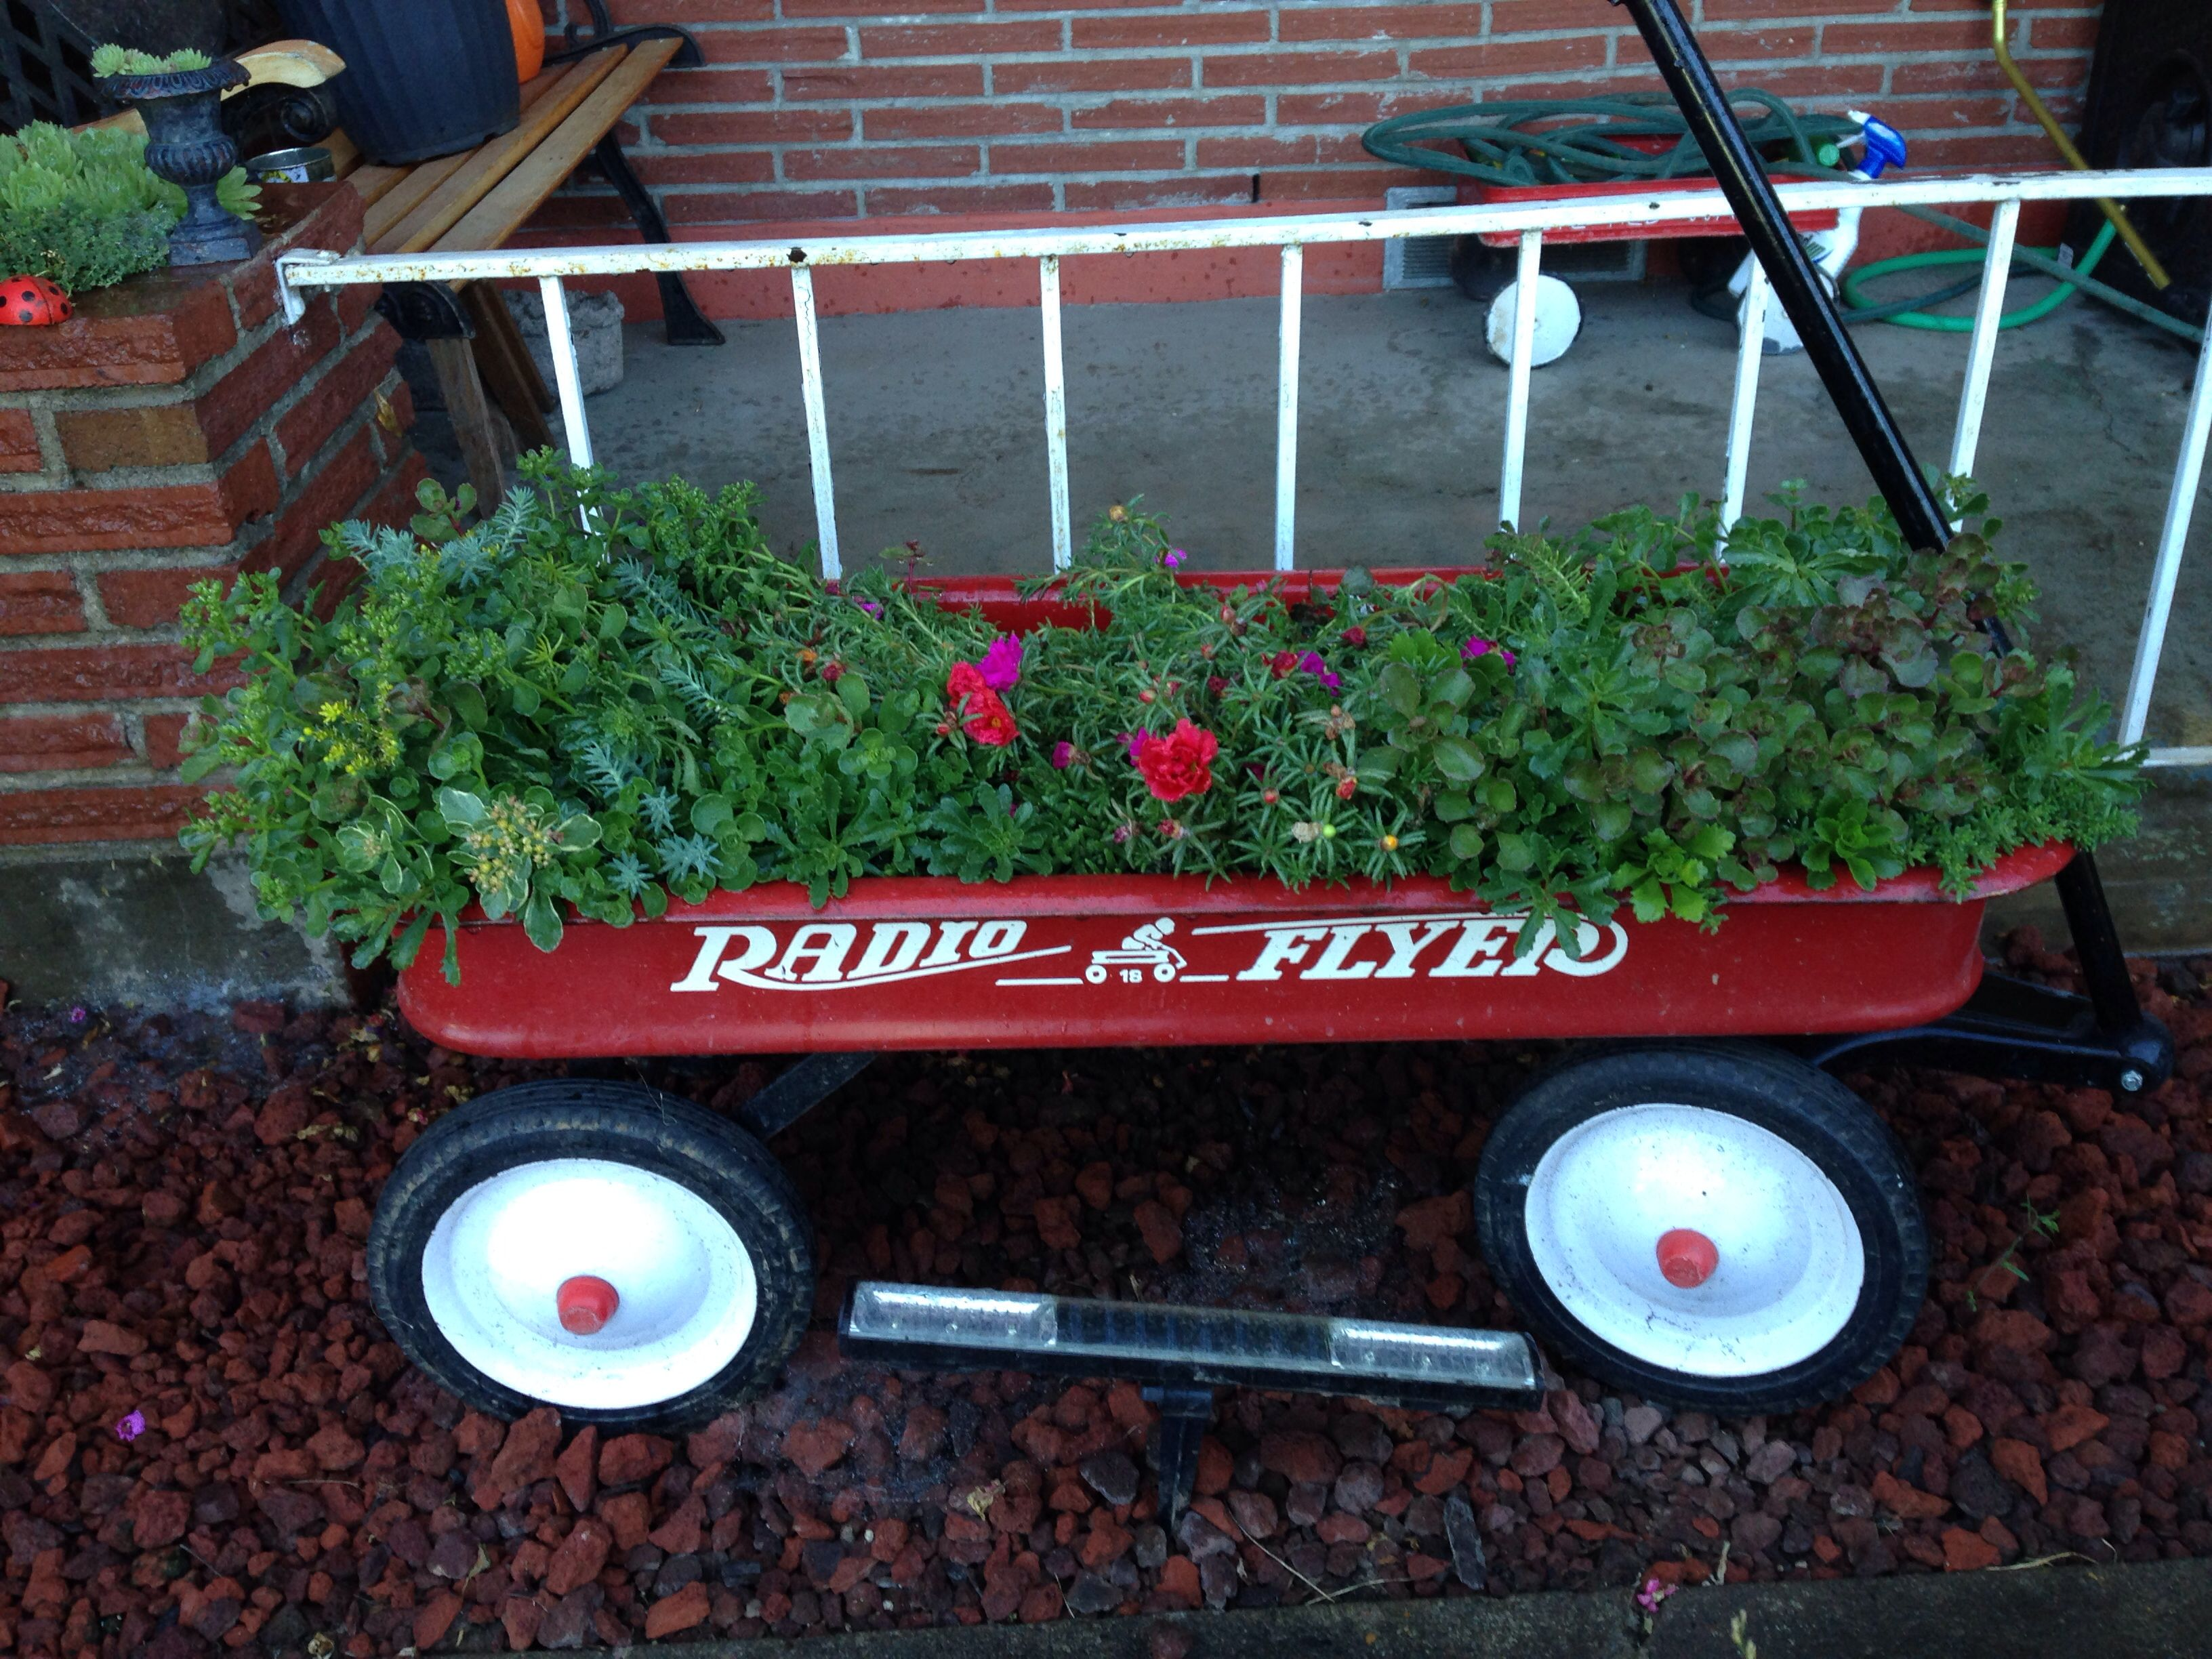 One of the vintage Radio Flyer Wagon planter/container gardens I've made :)   Make sure to drill holes for drainage & coat the inside of it with polyurethane to keep your plants healthy.